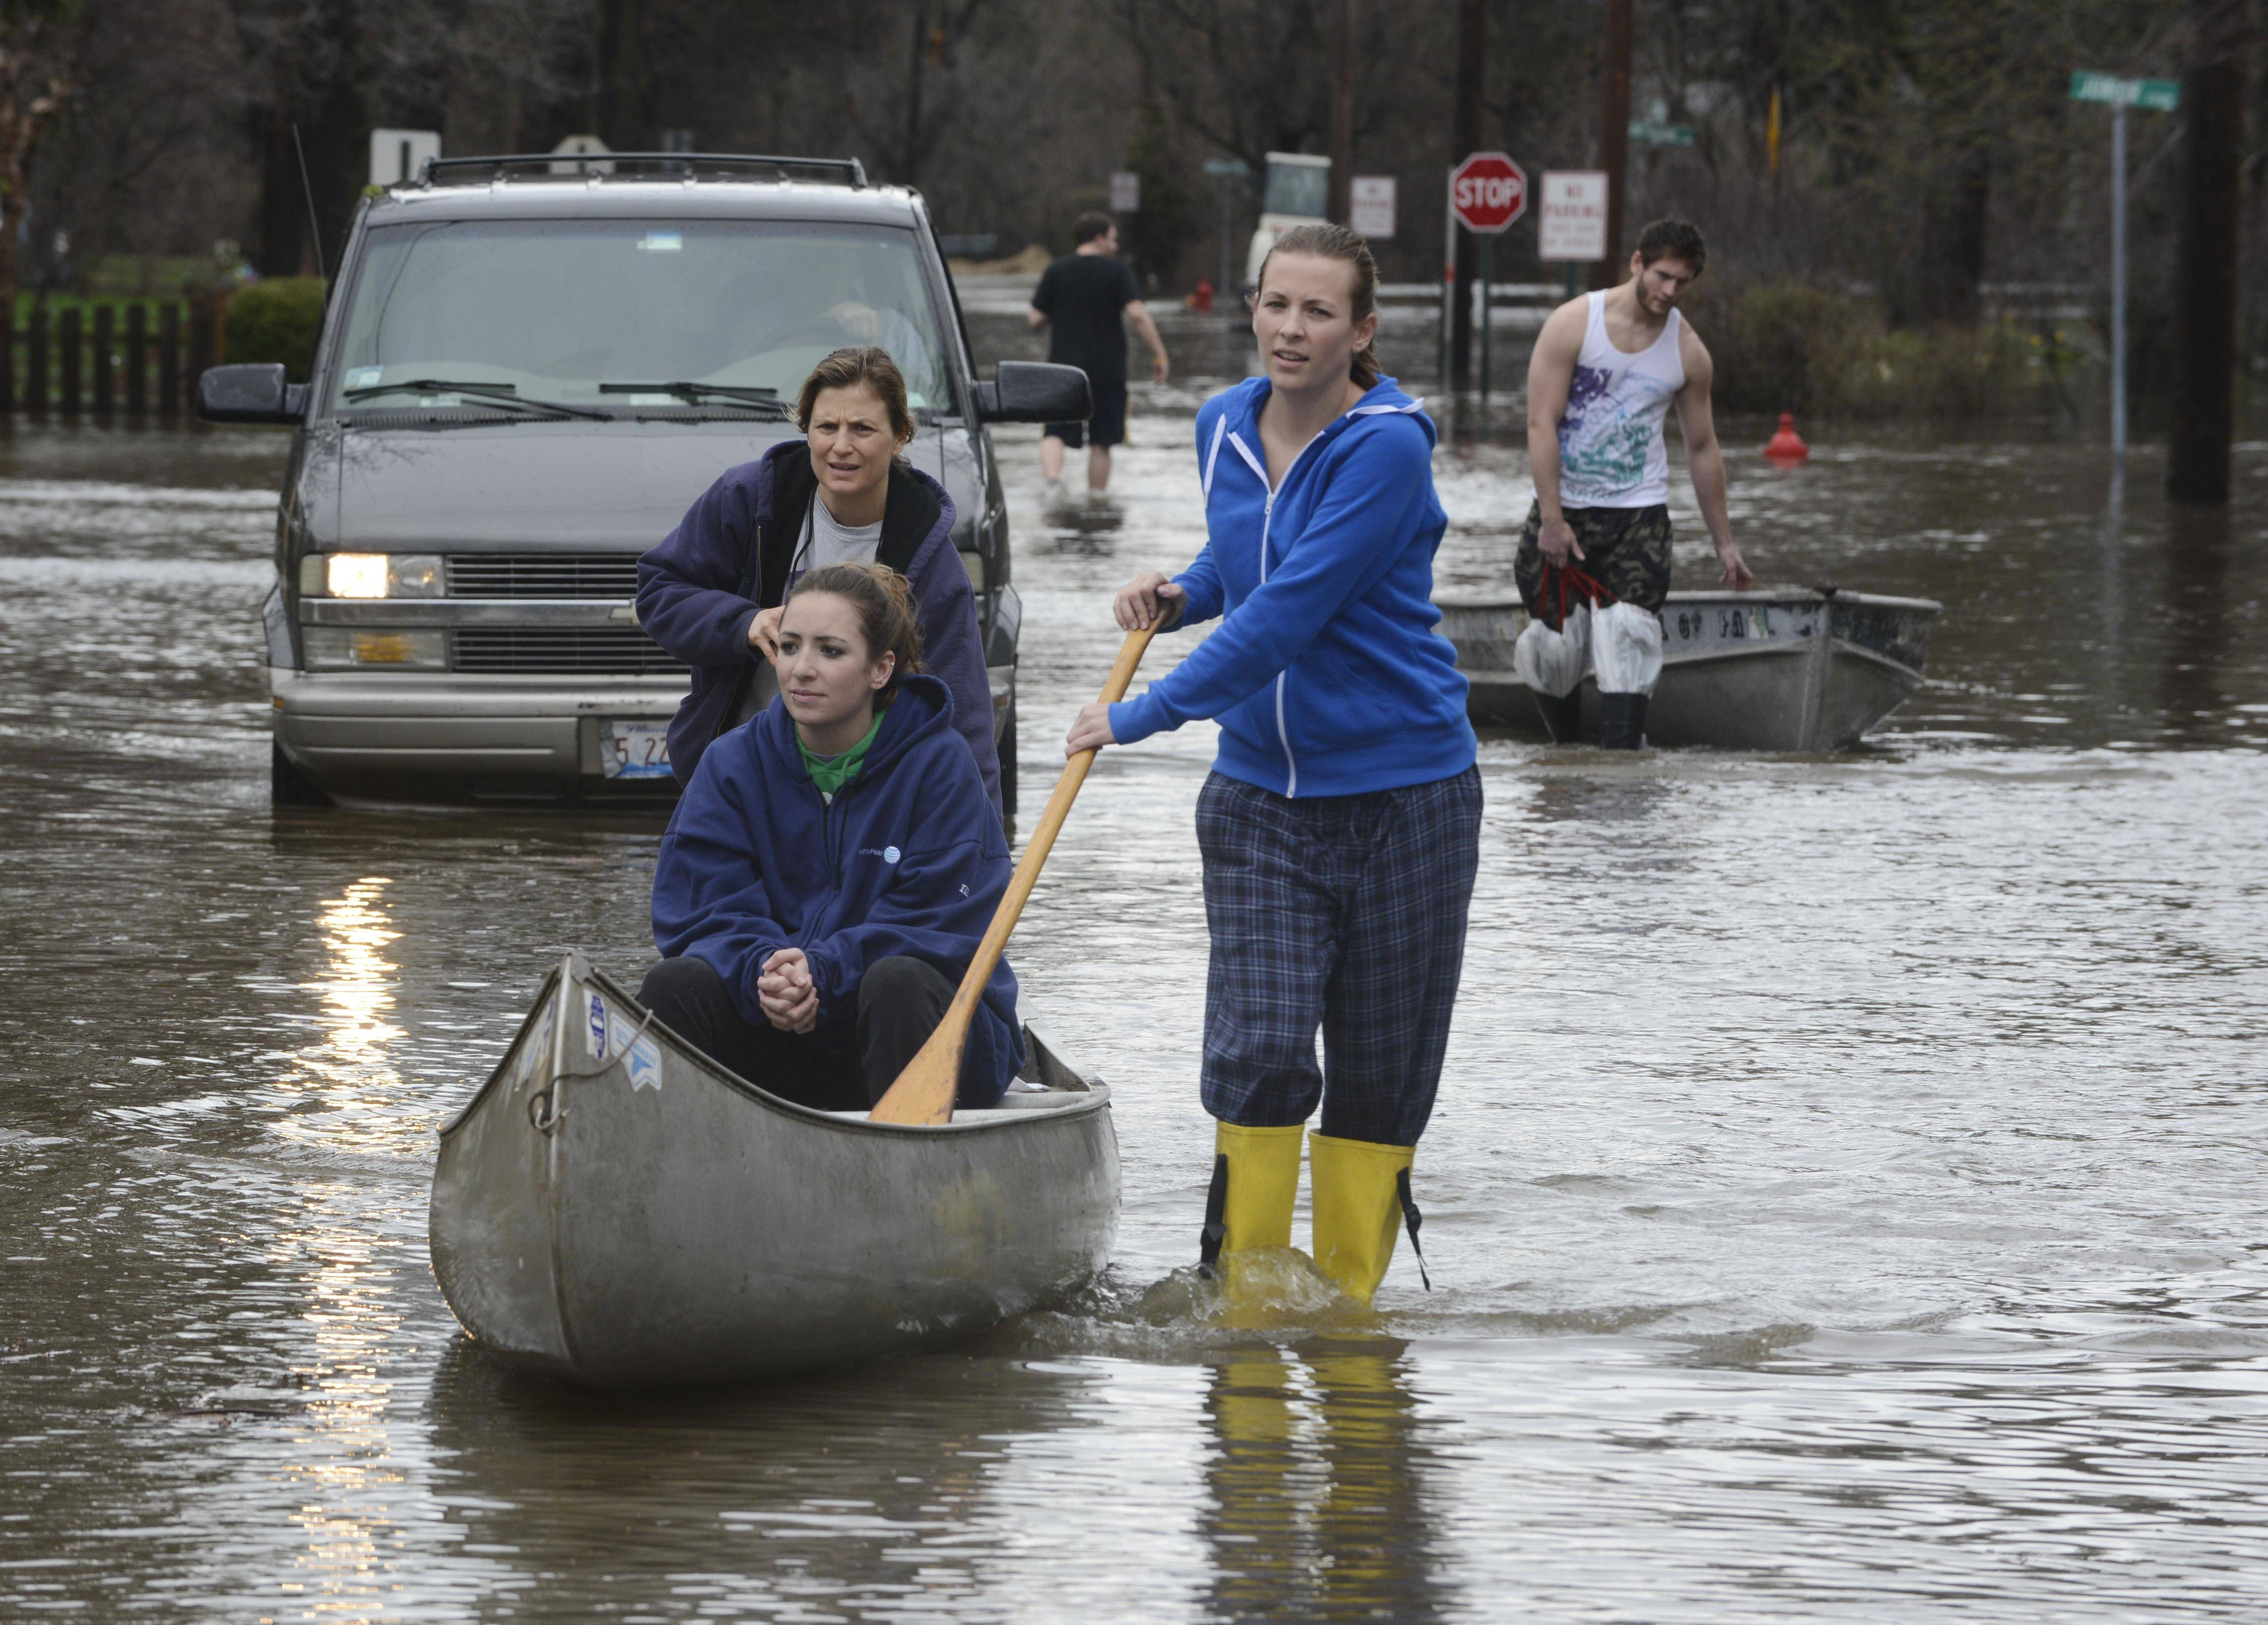 Rebecca Cavanaugh rides in a canoe pushed by her aunt, Tina Dace, of Evanston and her sister, Robin, as they depart from the Cavanaugh's grandparents home in the flooded Big Bend neighborhood in Des Plaines Thursday.